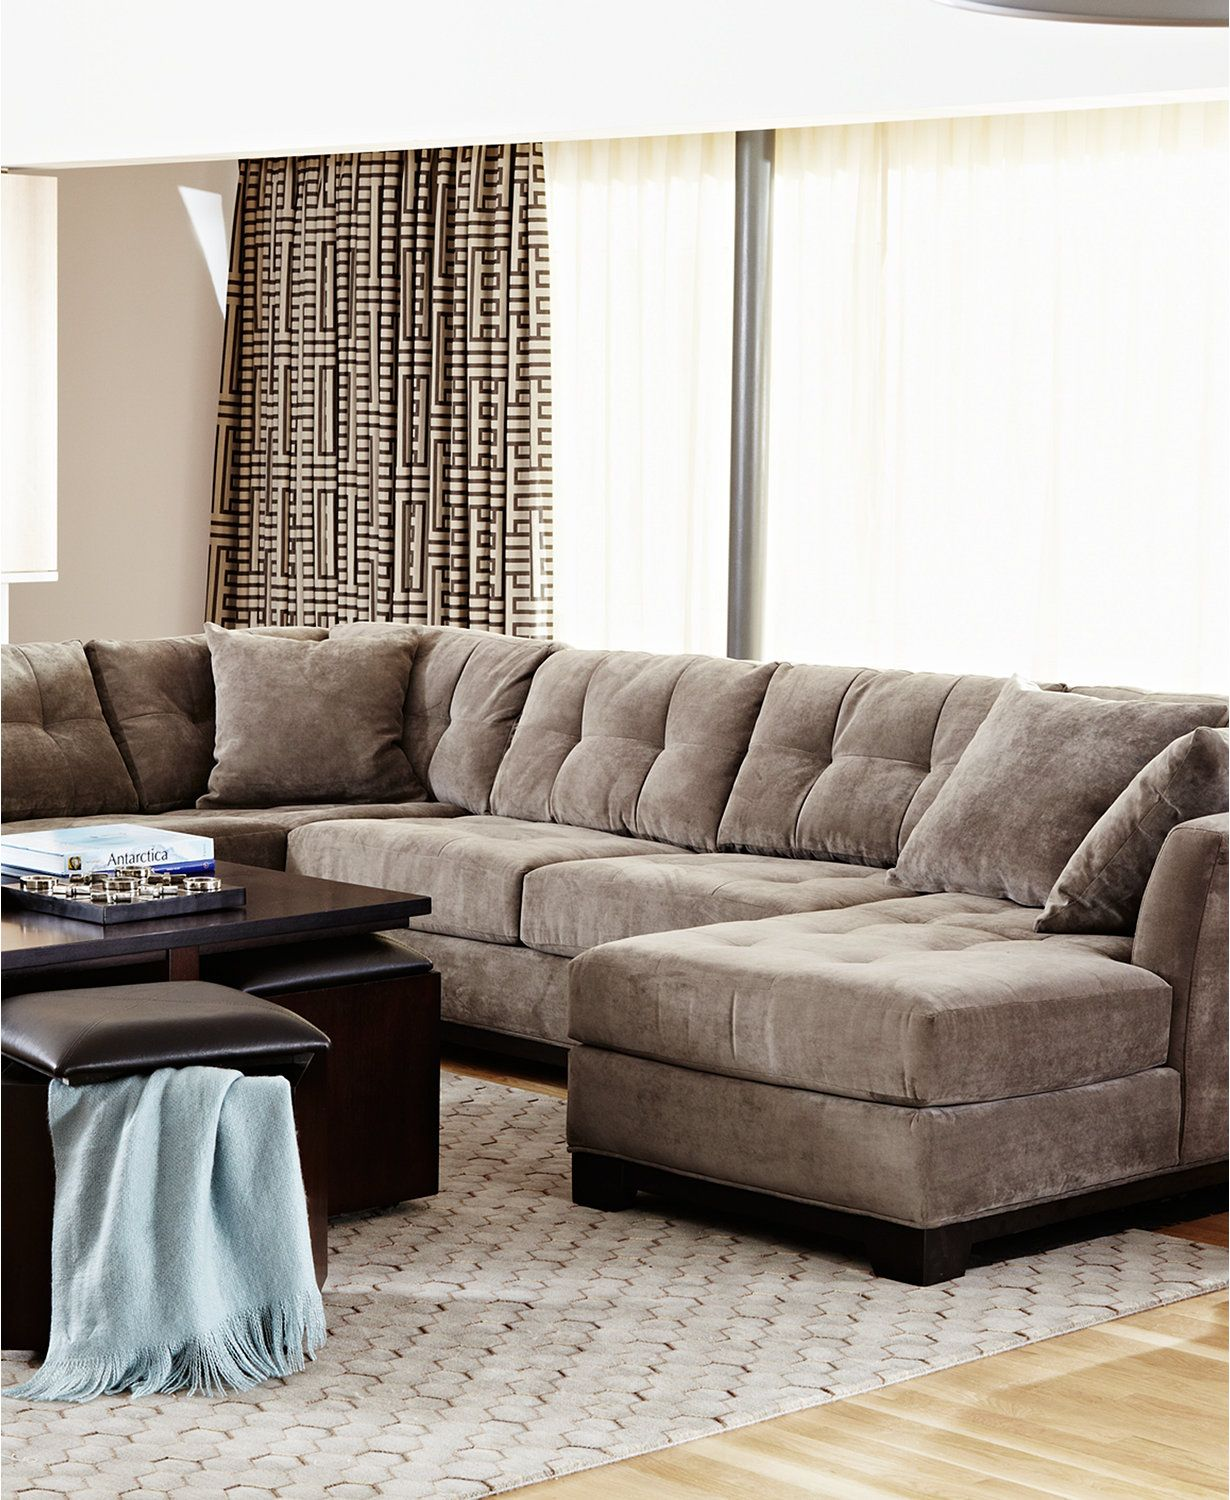 Elliot Fabric Microfiber 3 Piece Chaise Sectional Sofa Macys Com Living Room Furniture Collections Living Room Sectional Home